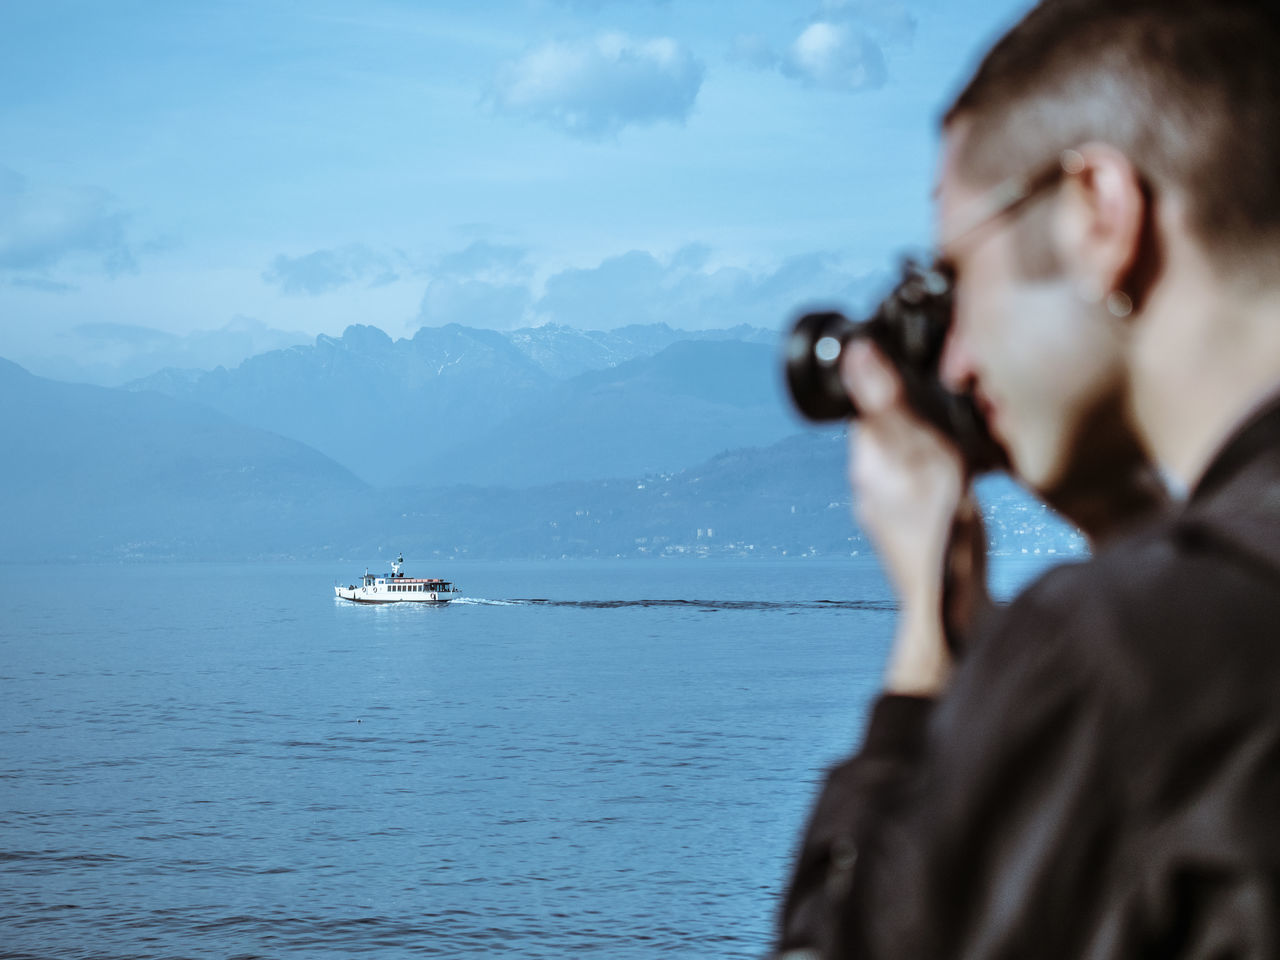 Beauty In Nature Boat Camera Camera - Photographic Equipment Close-up Cloud - Sky Clouds And Sky Hand Hands Lake Landscape Men Nature Nature Photography One Person Sky Sky And Clouds Stresa Water Young Adult Young Men